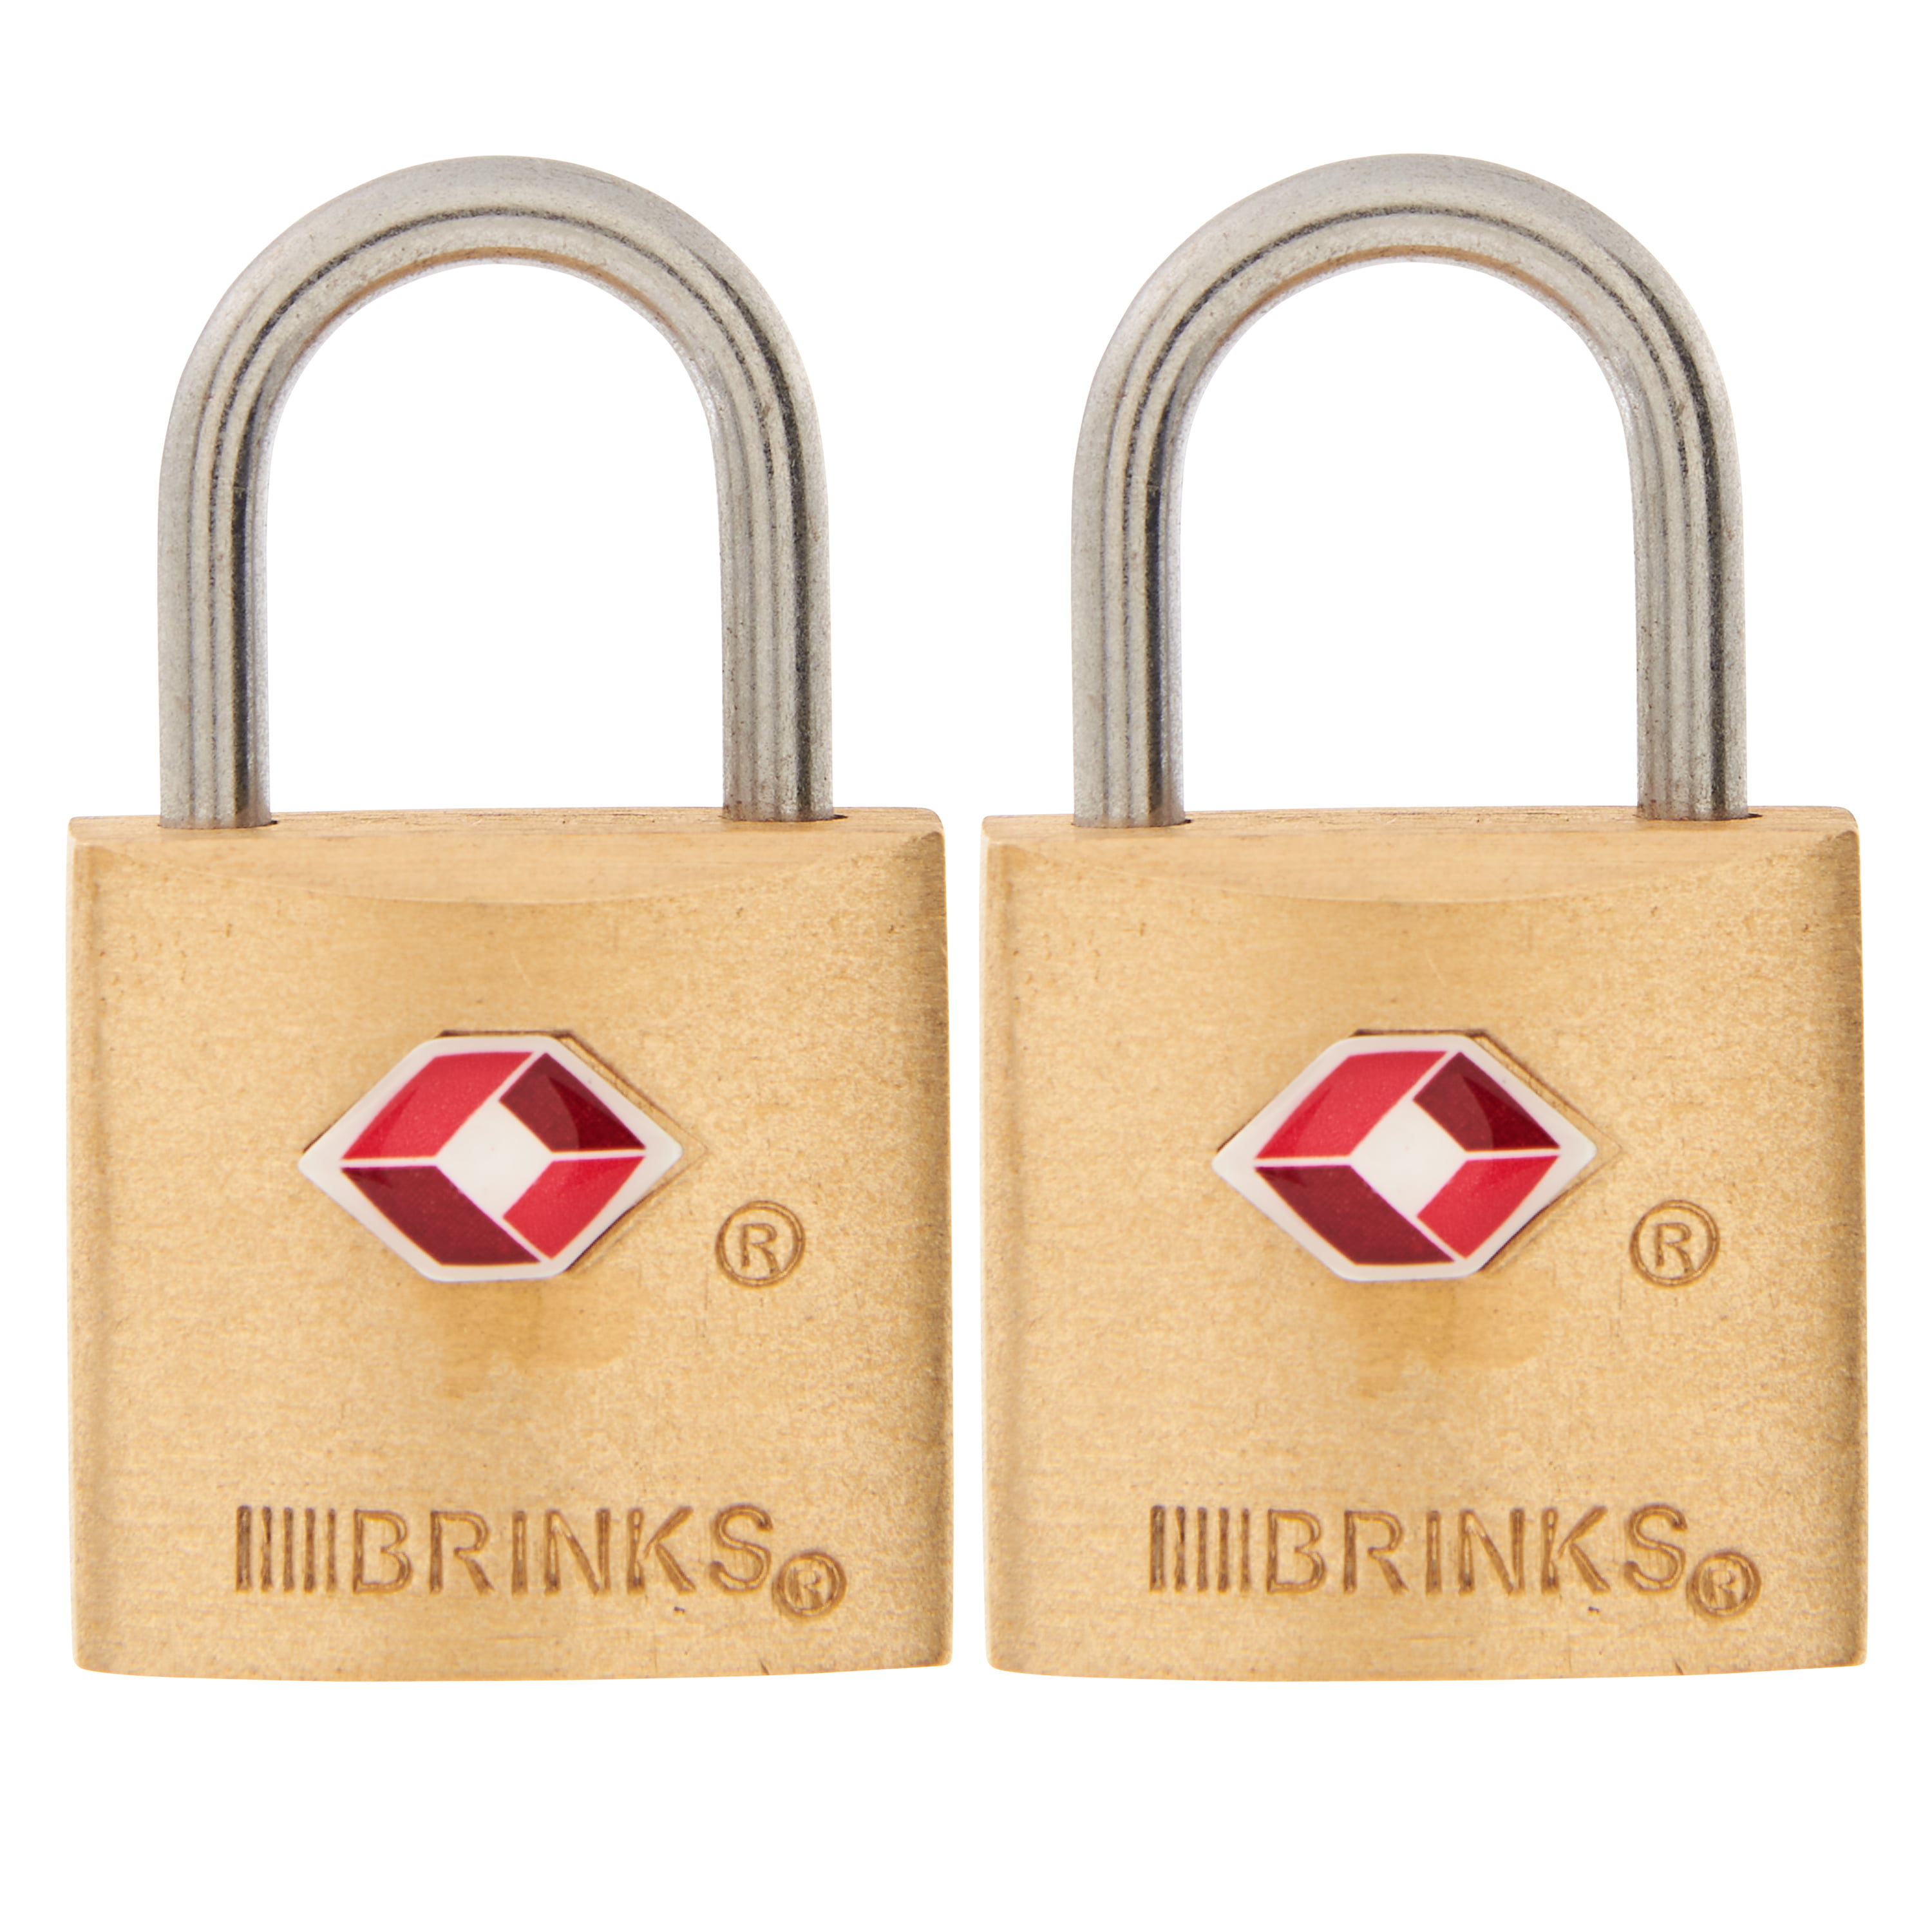 Brink/'s 4-PACK SOLID BRASS PADLOCK 22mm TSA TRAVEL LUGGAGE Weather-Resistant